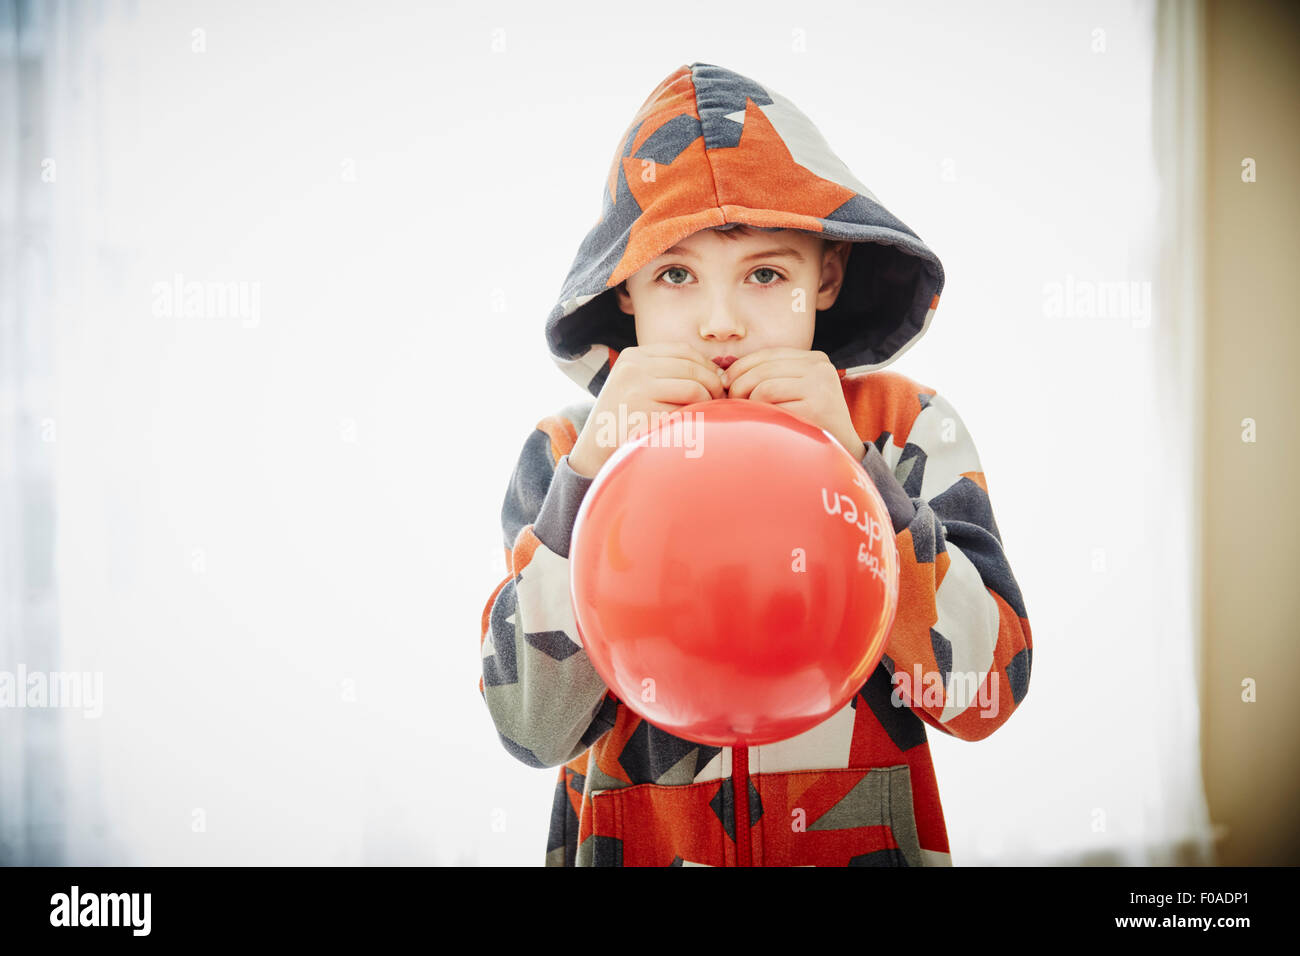 Young boy blowing red balloon - Stock Image